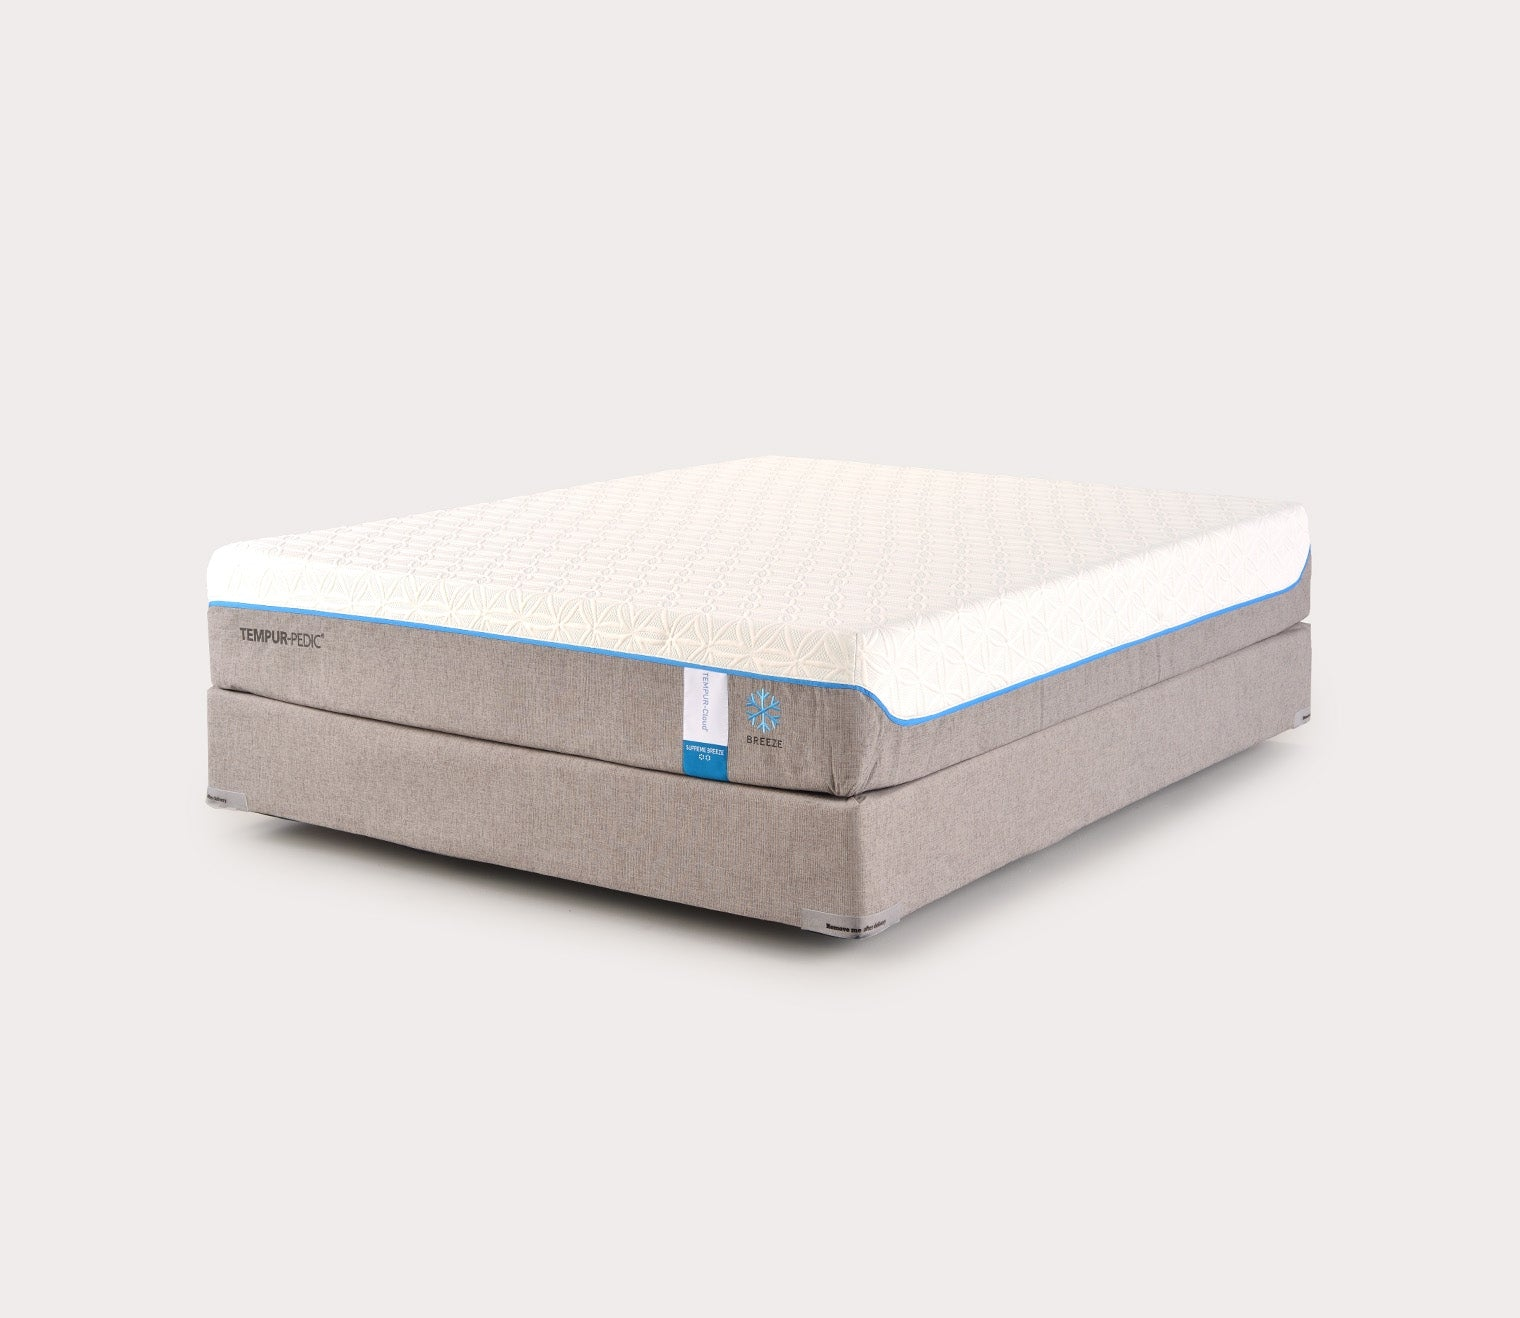 for costco pedic mattresses beyond new inch a topper style and bed tempur popular best f clean pad mattress tempurpedic bath image how to uncategorized